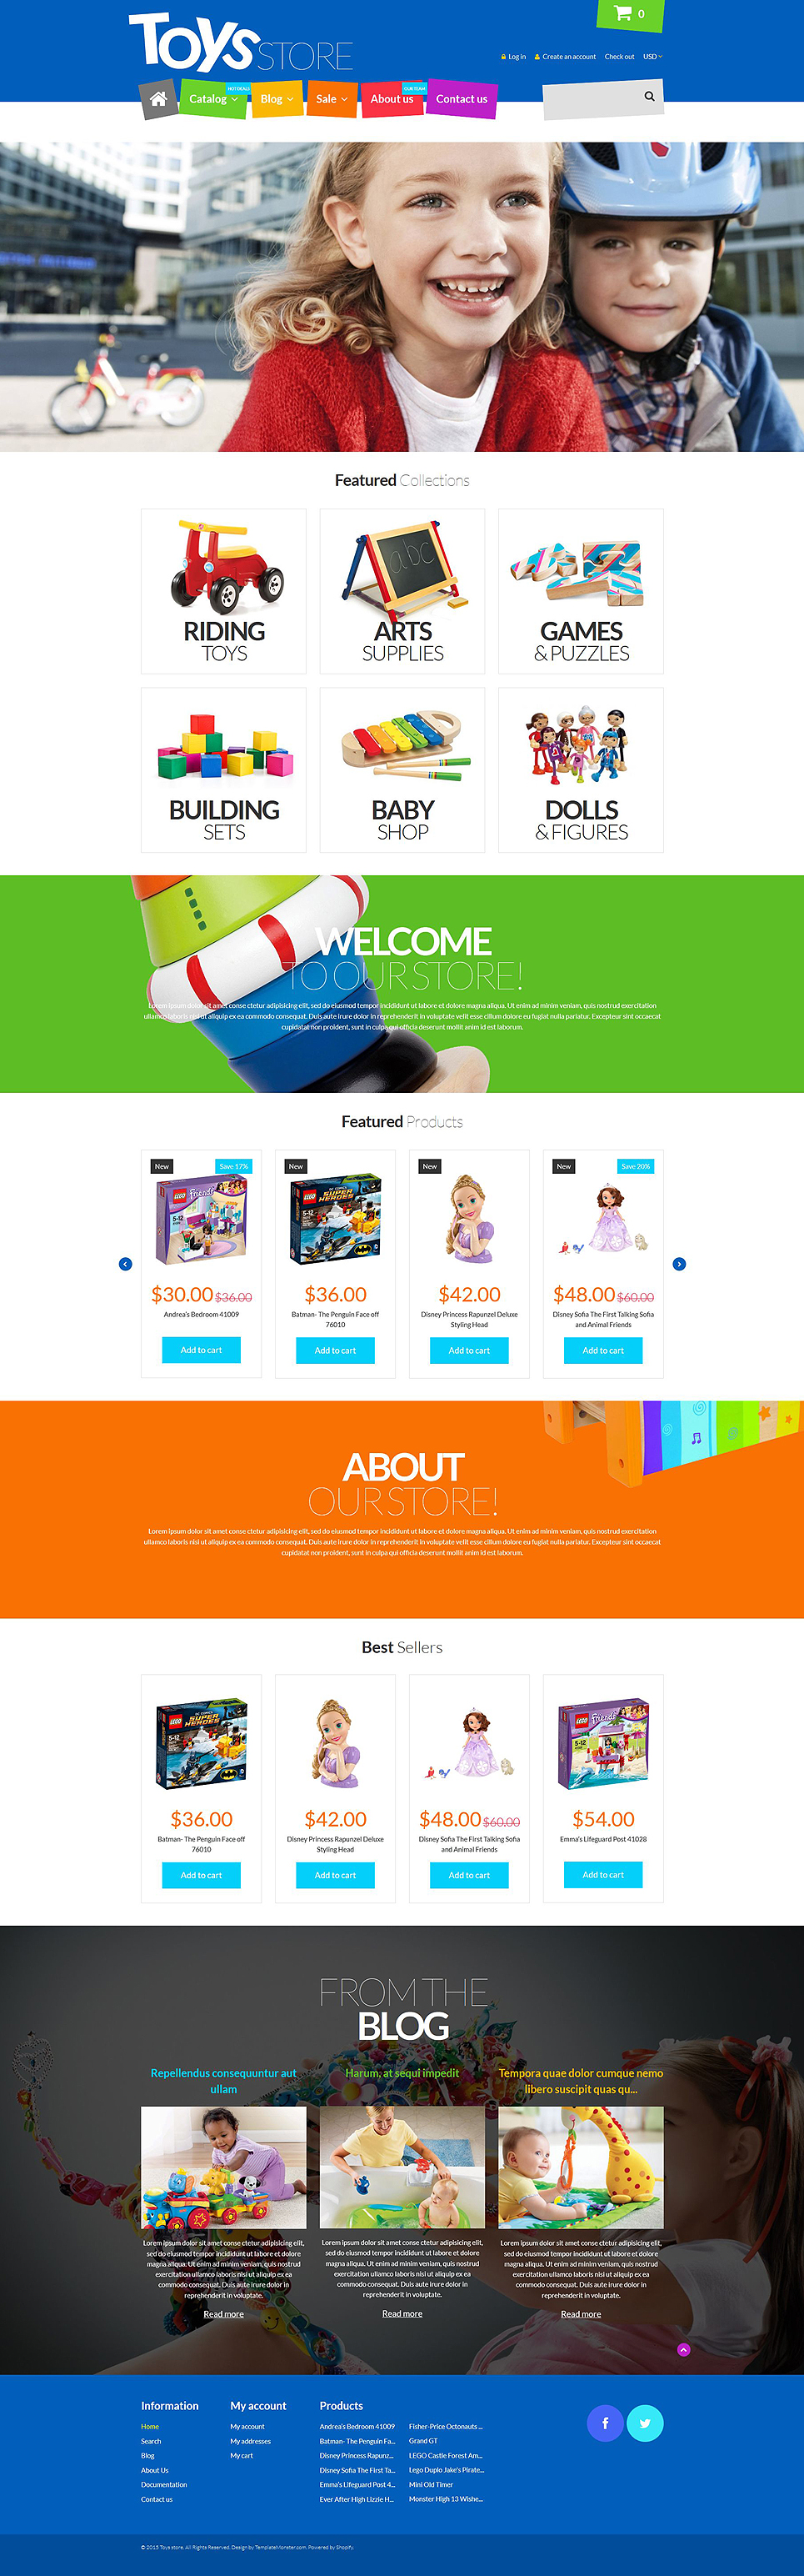 Fun toys shop shopify theme 53440 for Free shopify templates